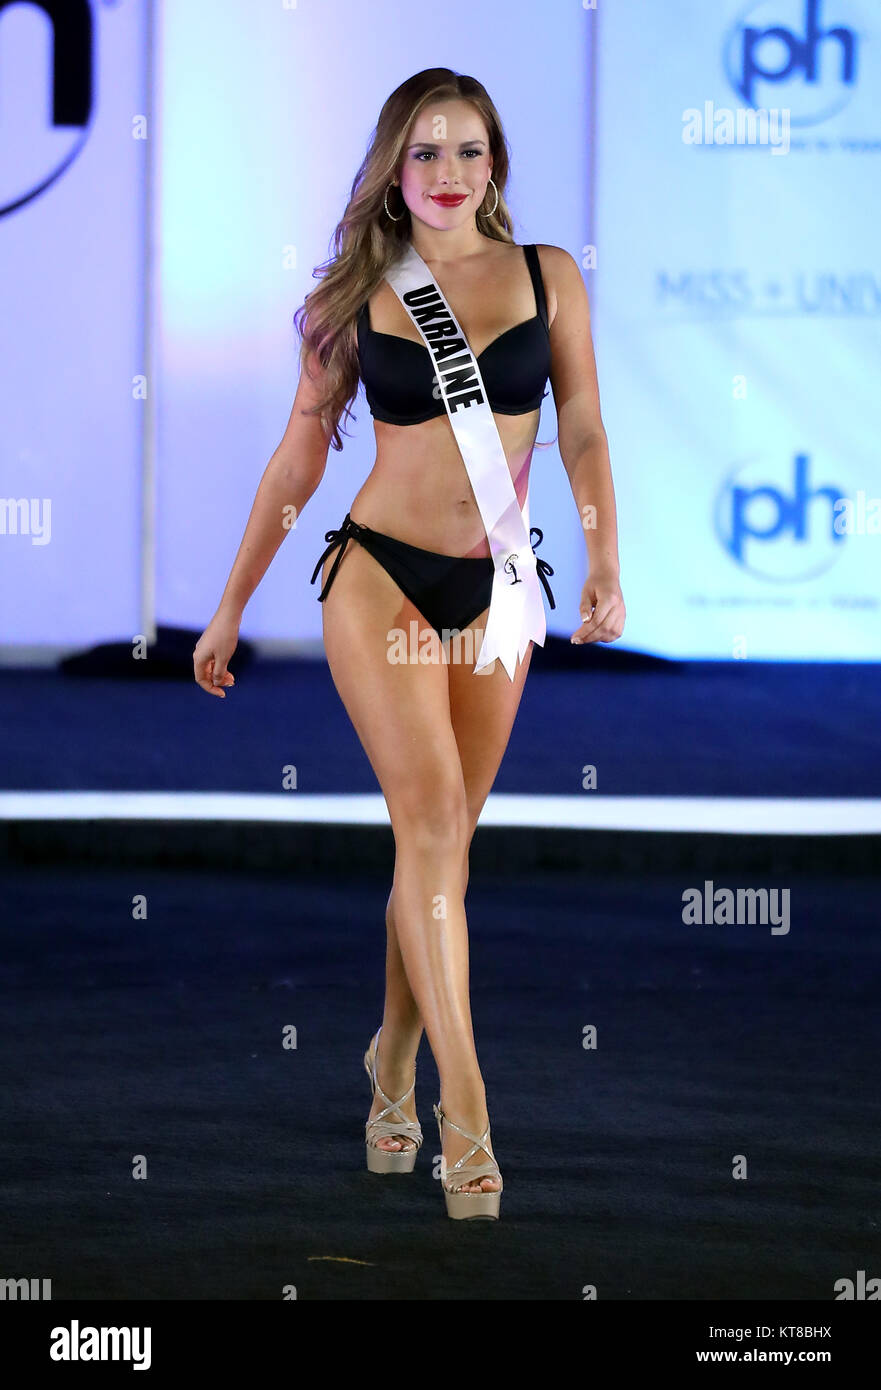 Miss Universe Preliminary Competition at Planet Hollywood Resort